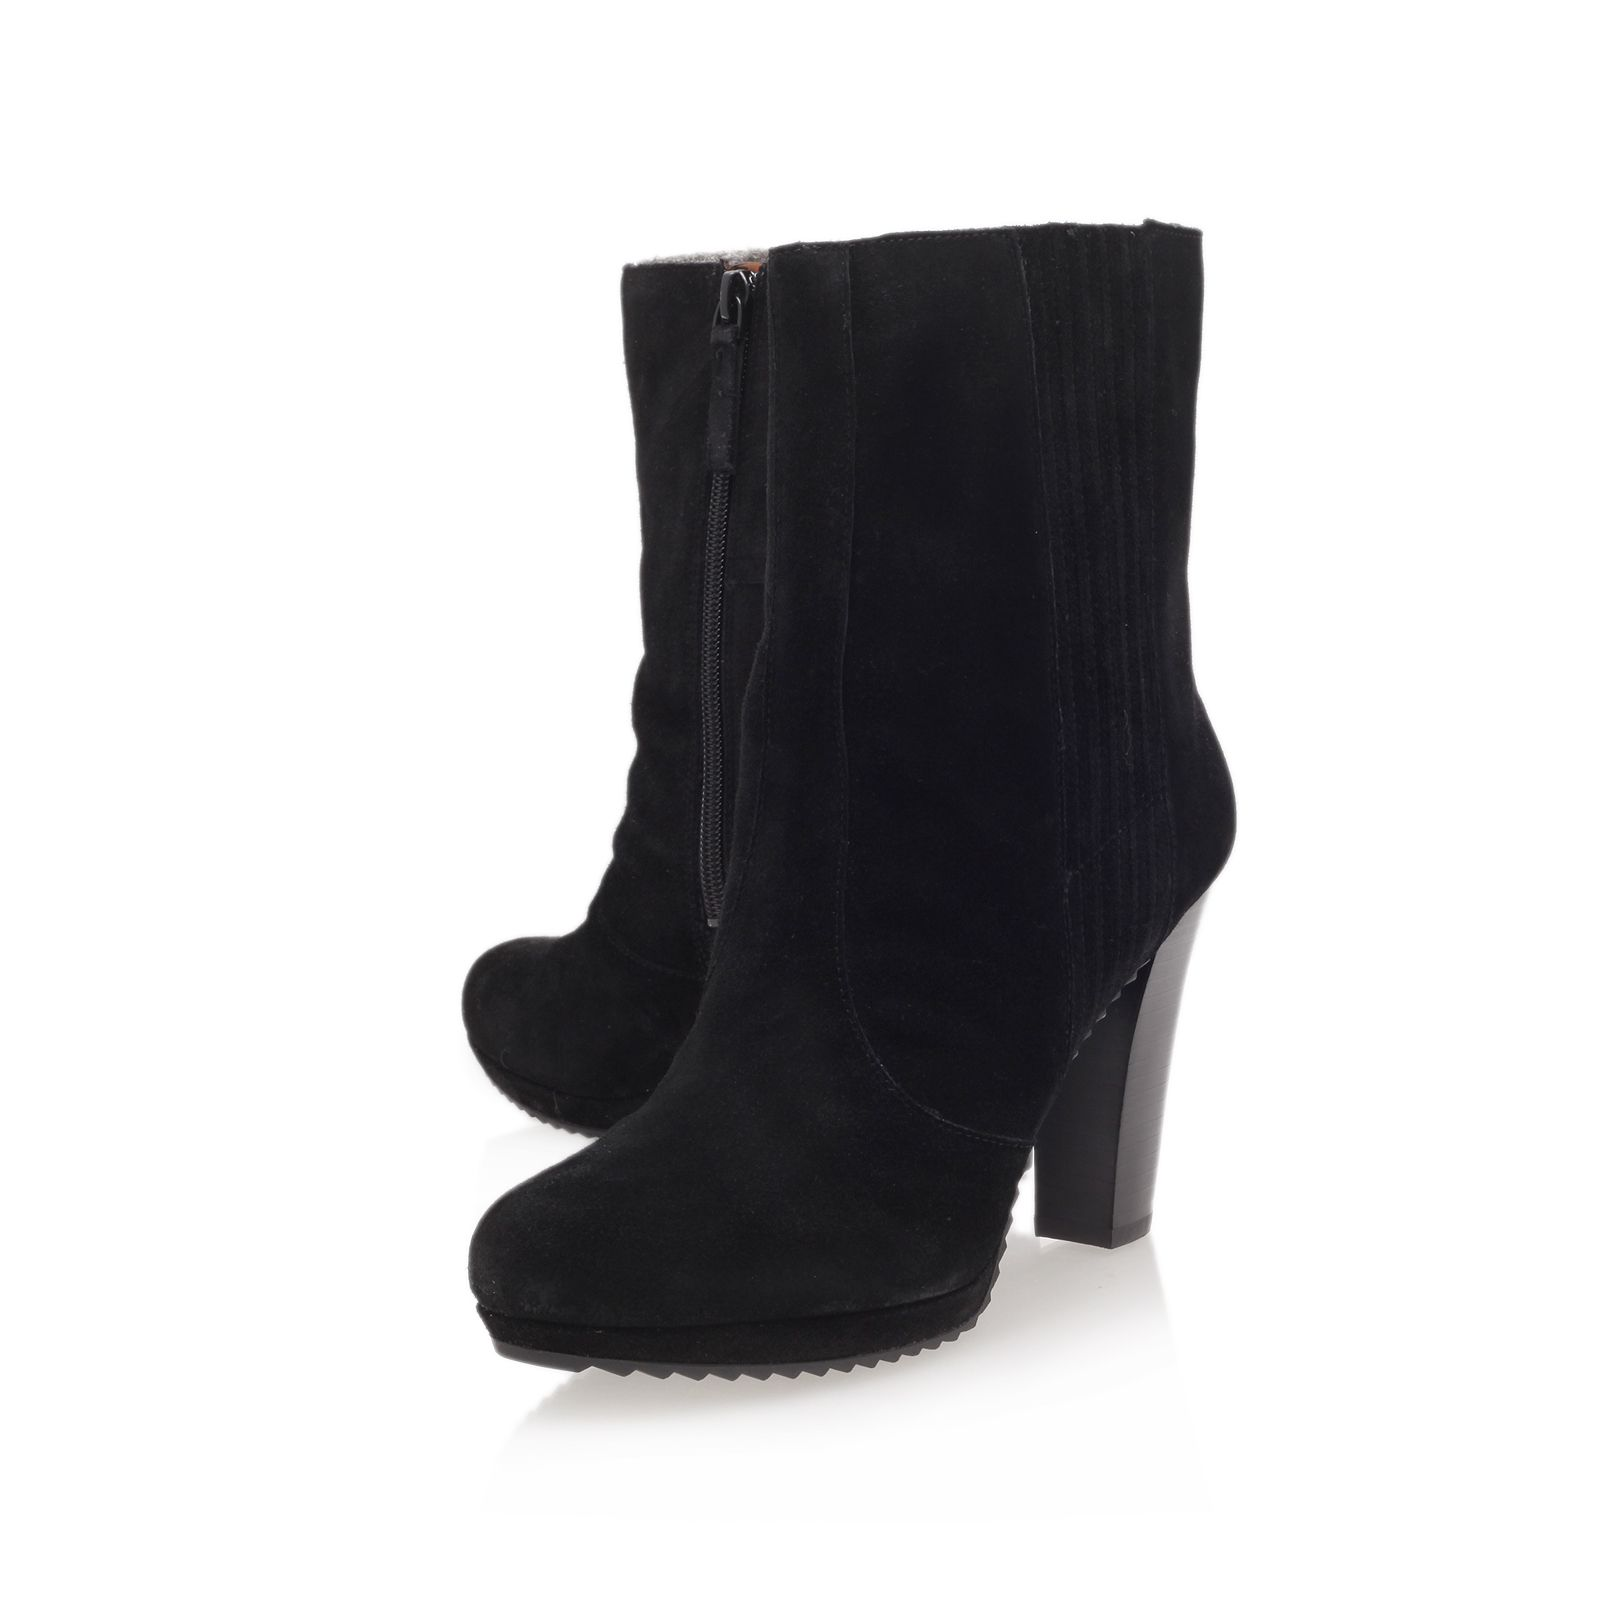 Perusha high heel calf boots